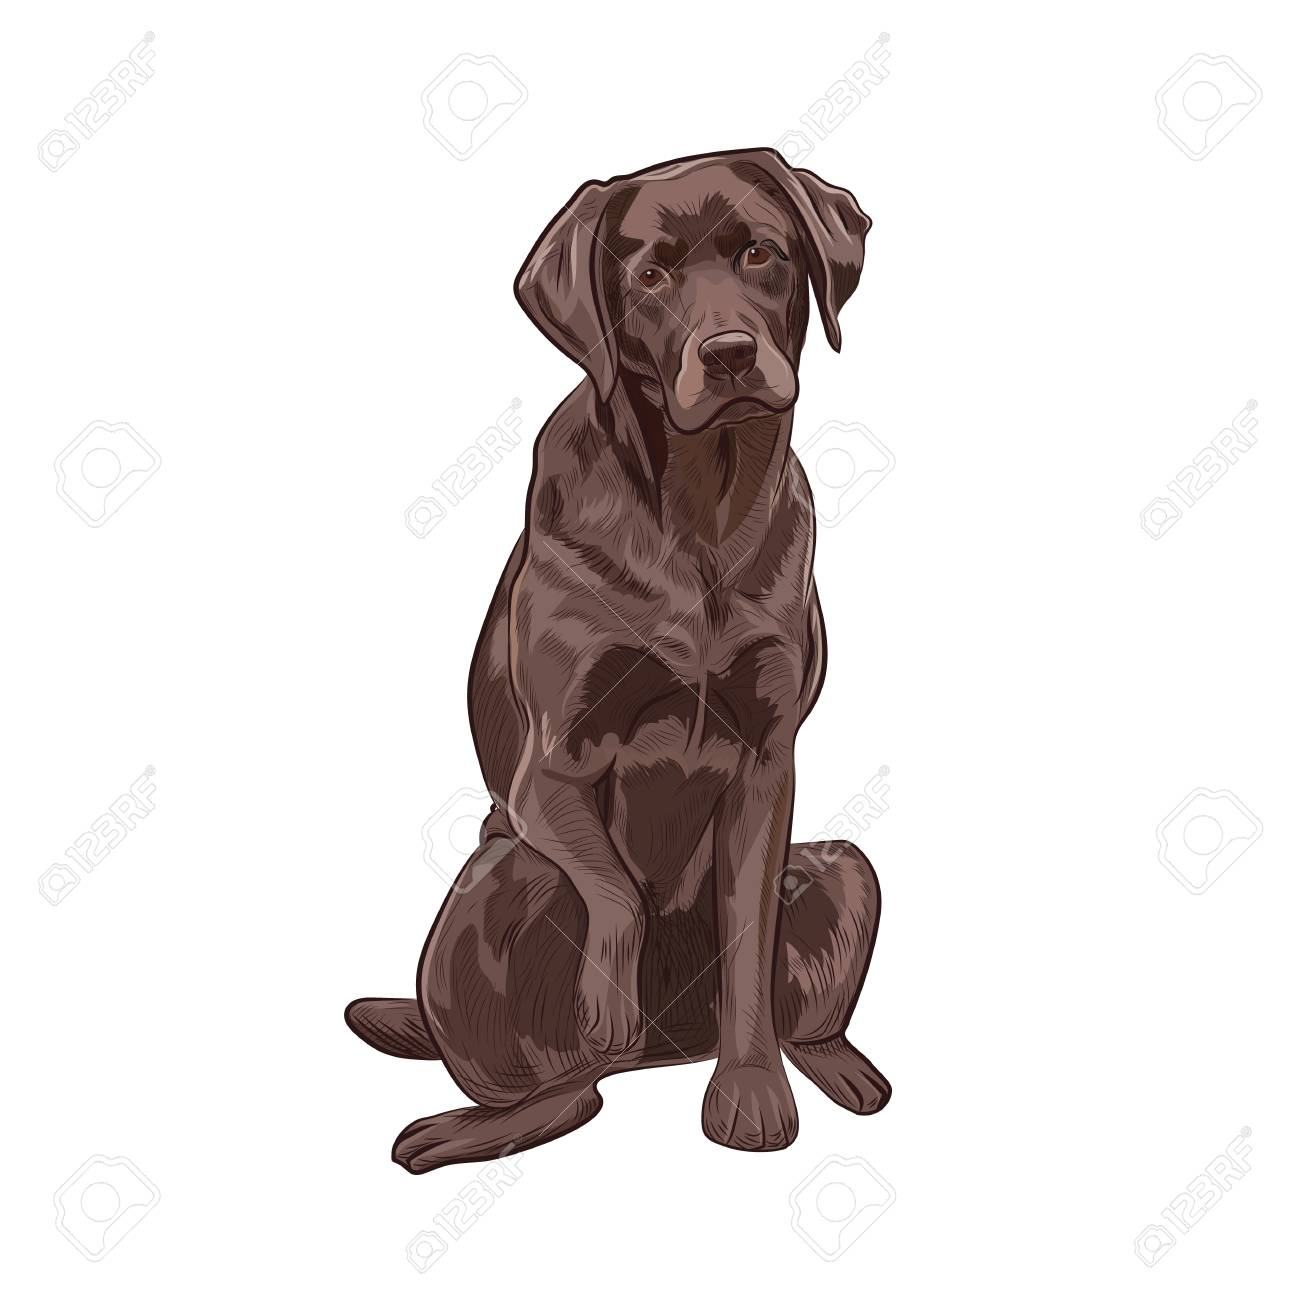 Cool Chocolate Brown Adorable Dog - 97406090-chocolate-labrador-sitting-and-giving-a-paw-brown-dog-isolated-on-white-background-adorable-purebred  You Should Have_759737  .jpg